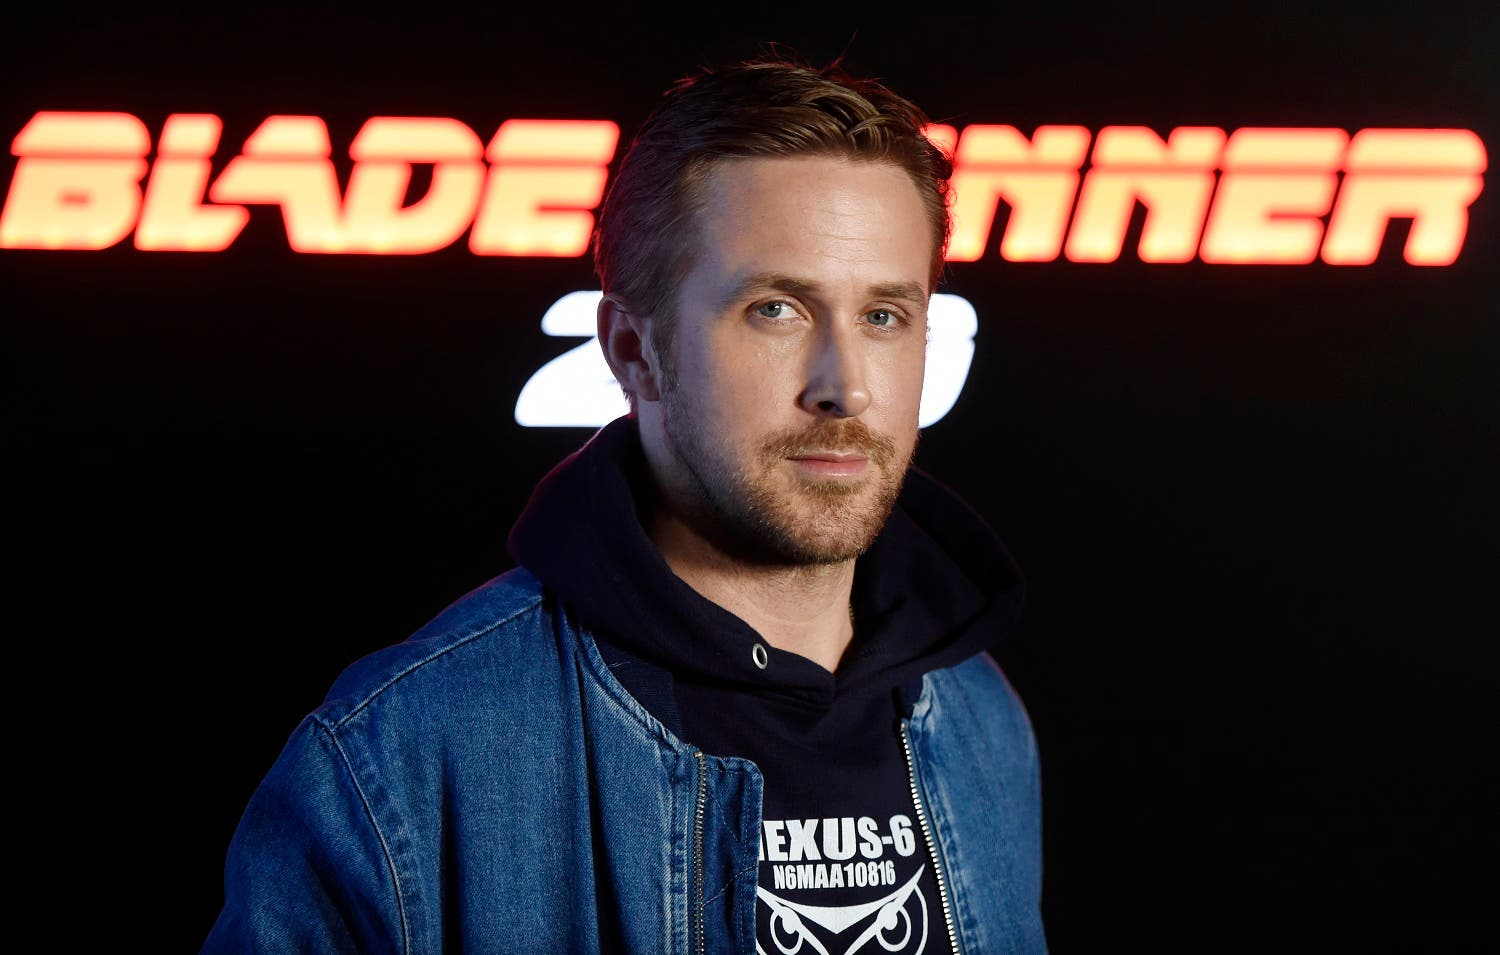 Ryan Gosling, a cast member in the upcoming film 'Blade Runner 2049,' poses during a photo call backstage at at CinemaCon 2017 in Las Vegas. (AP)